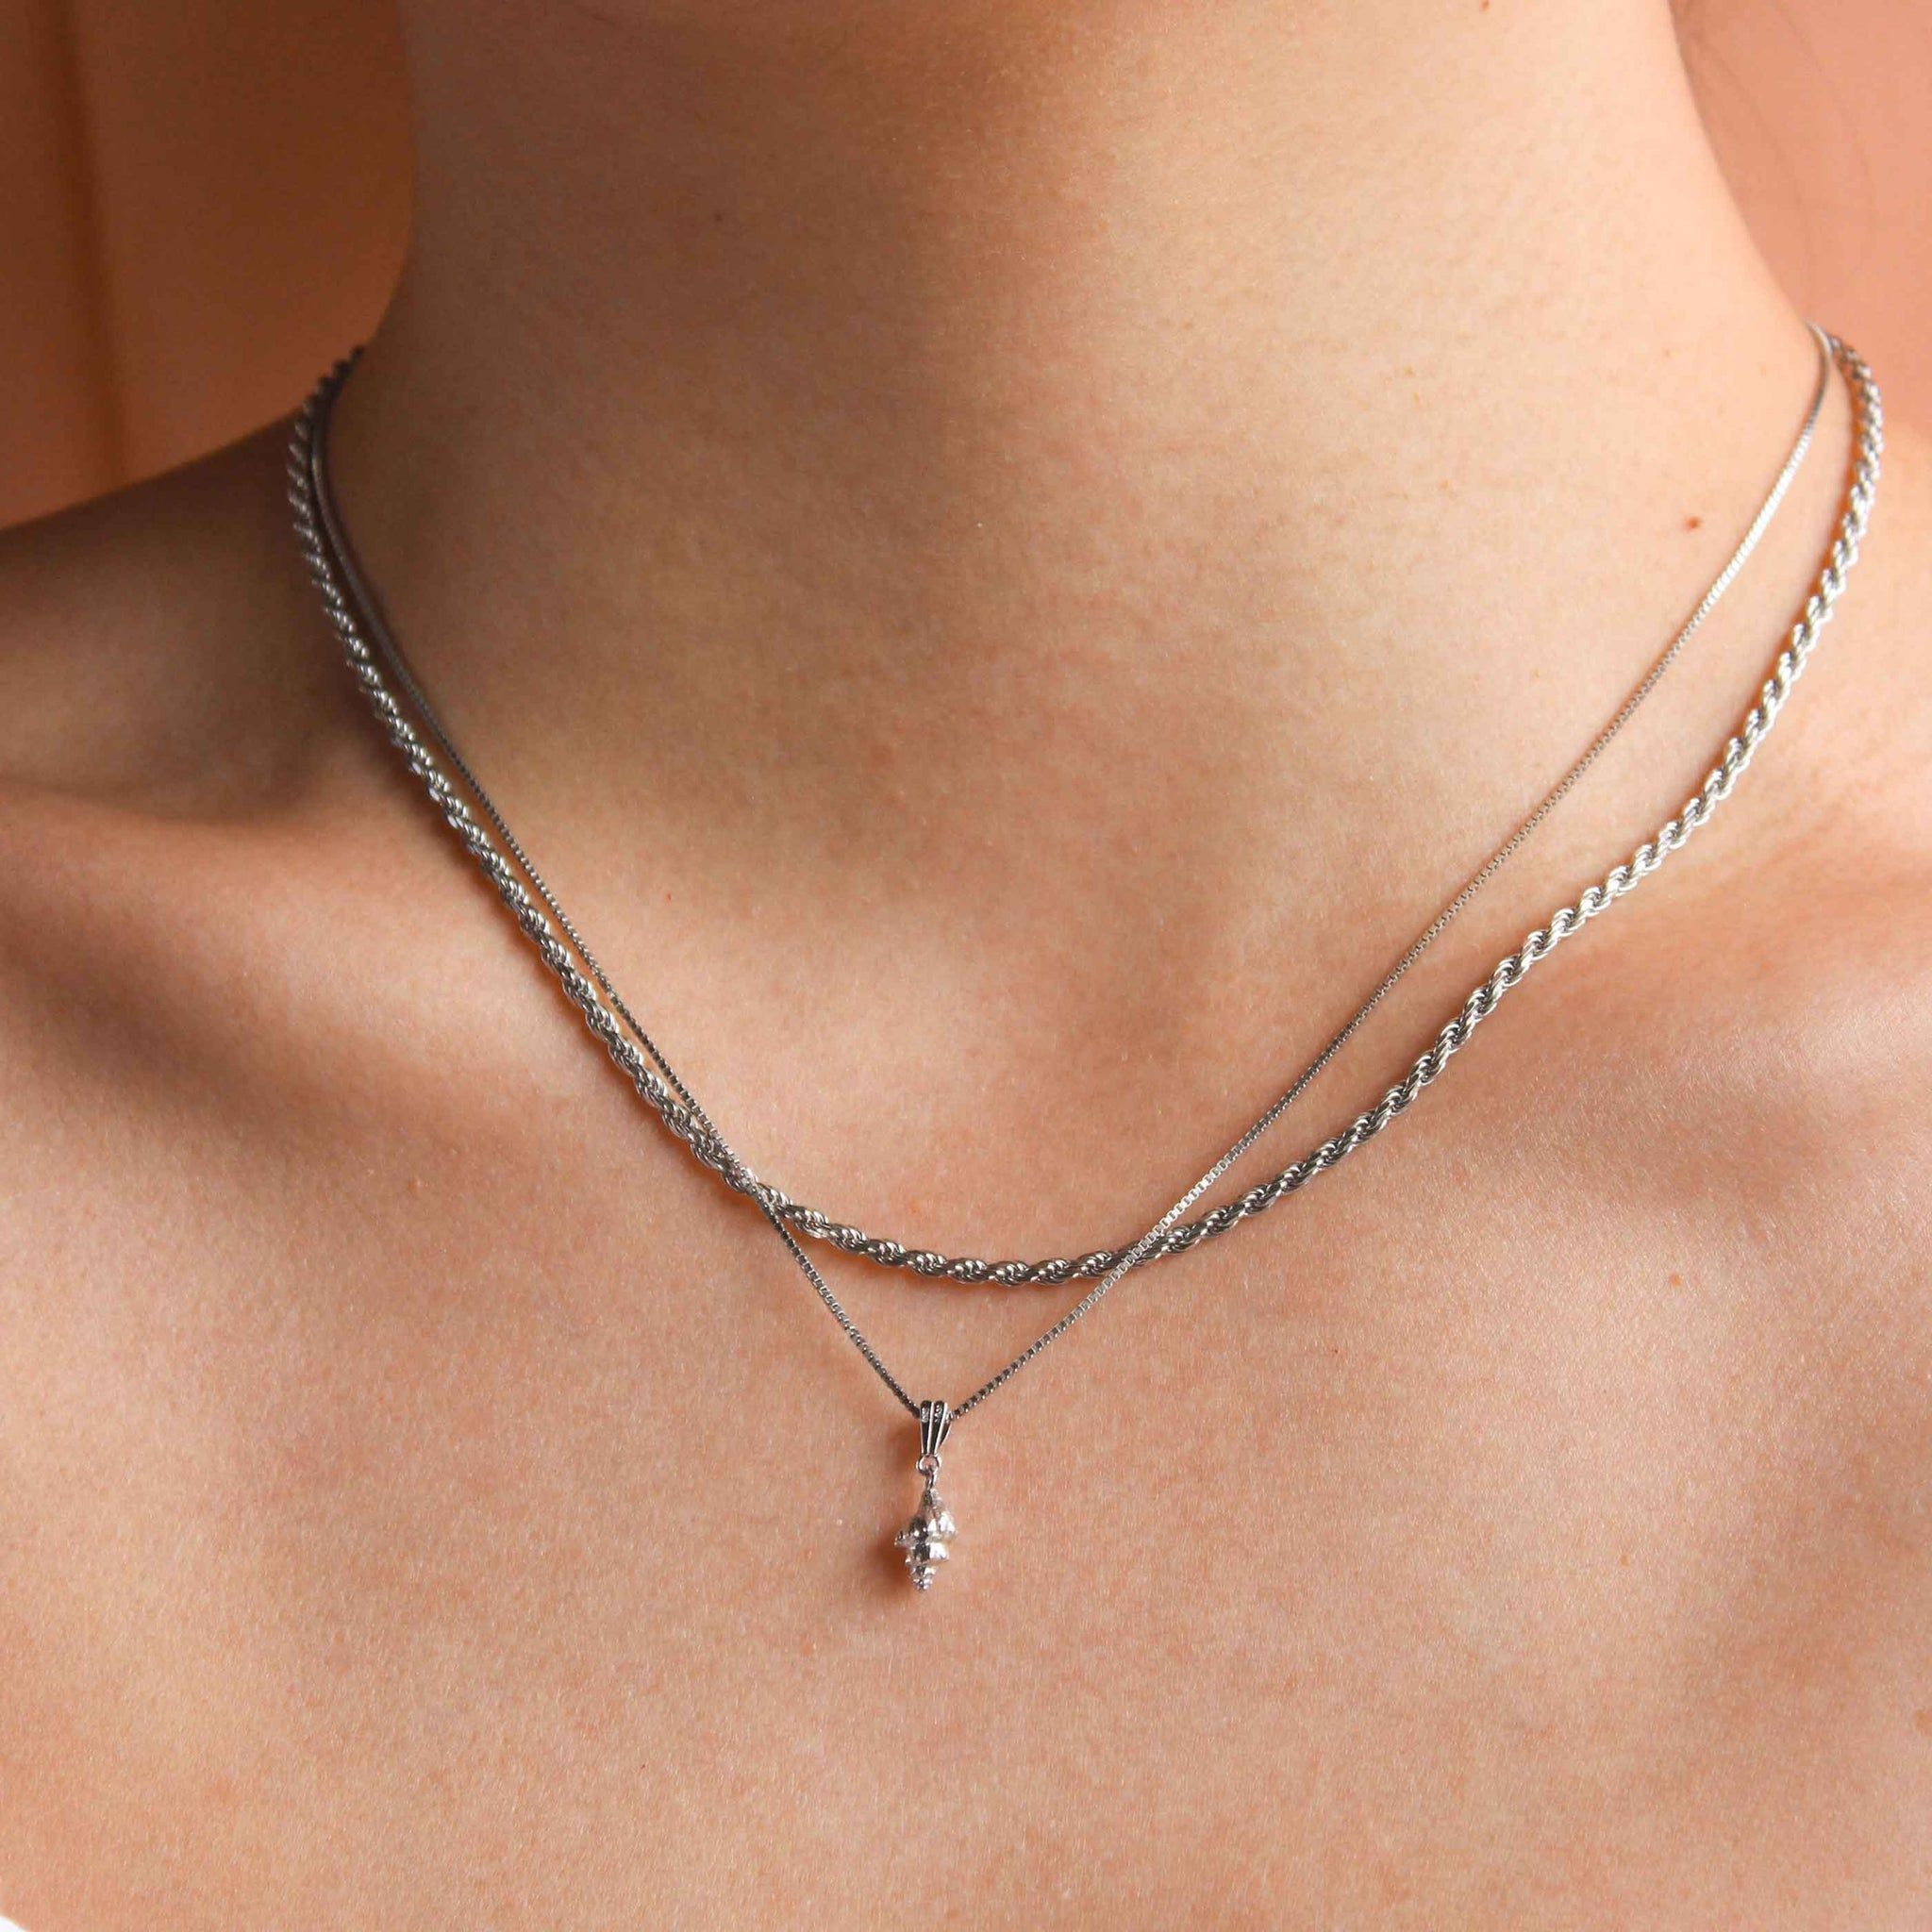 Whelk Shell Necklace Charm in Silver on fine chain